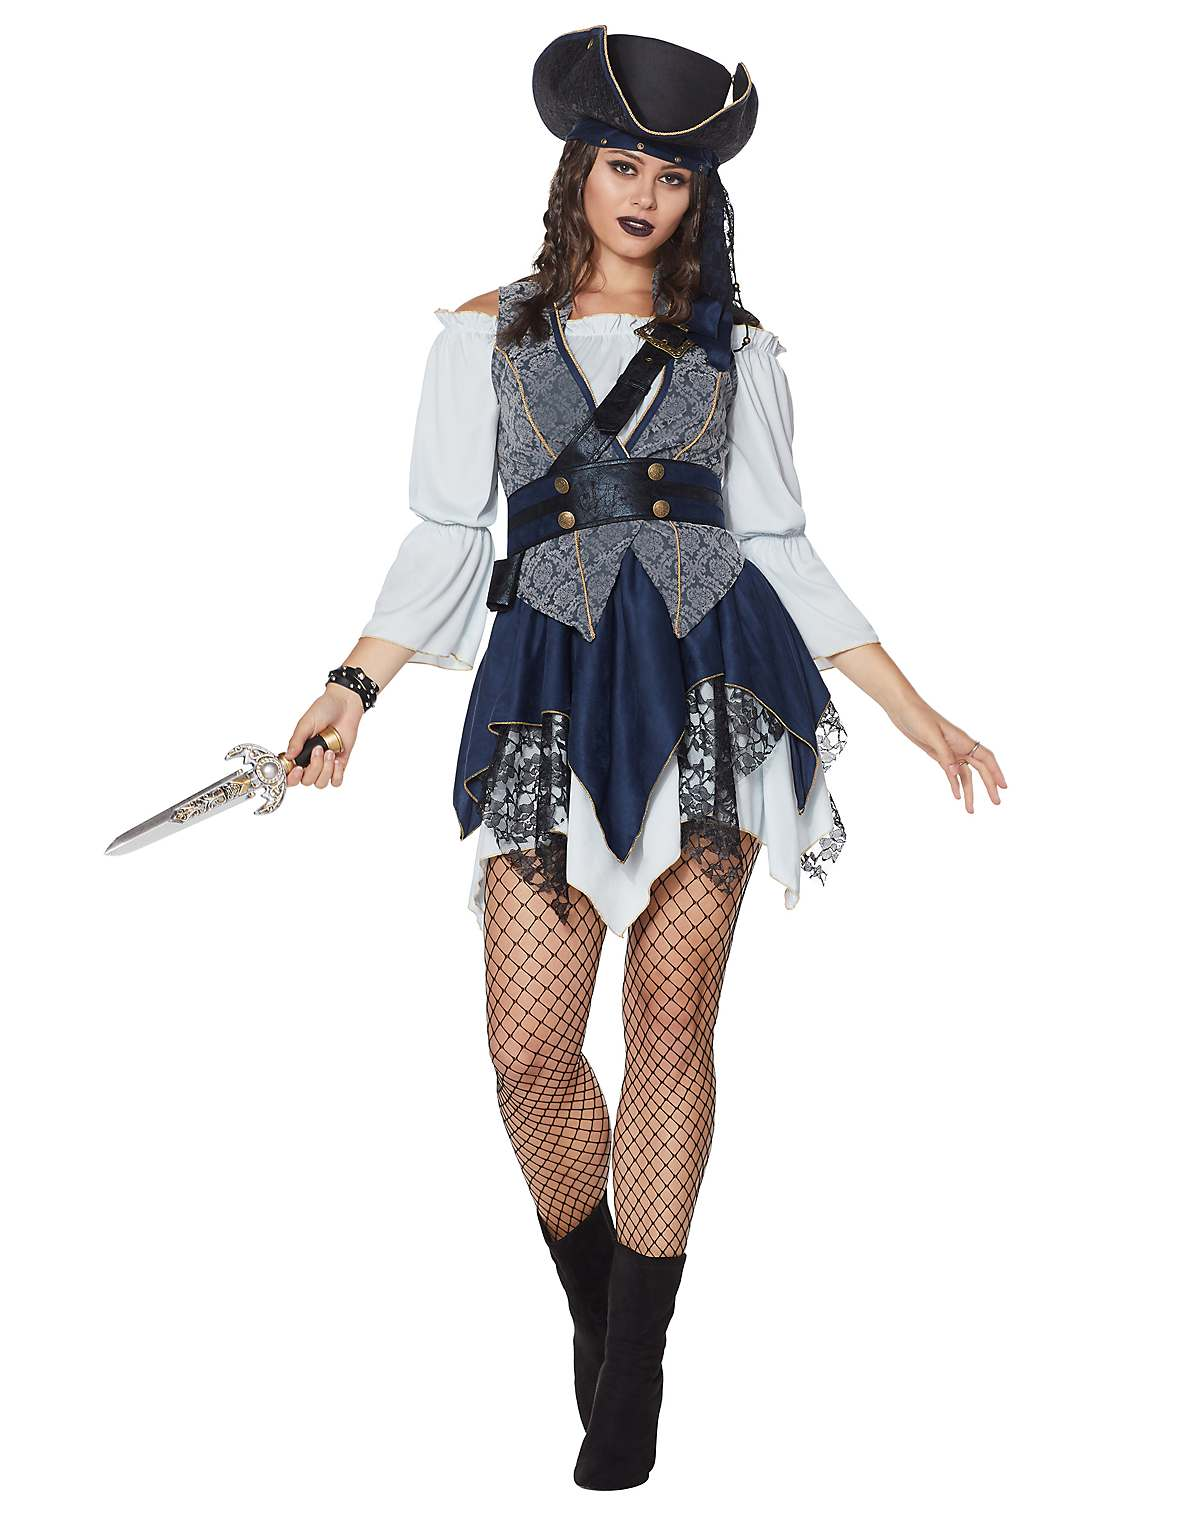 Castaway Beauty Pirate Costume - The Signature Collection